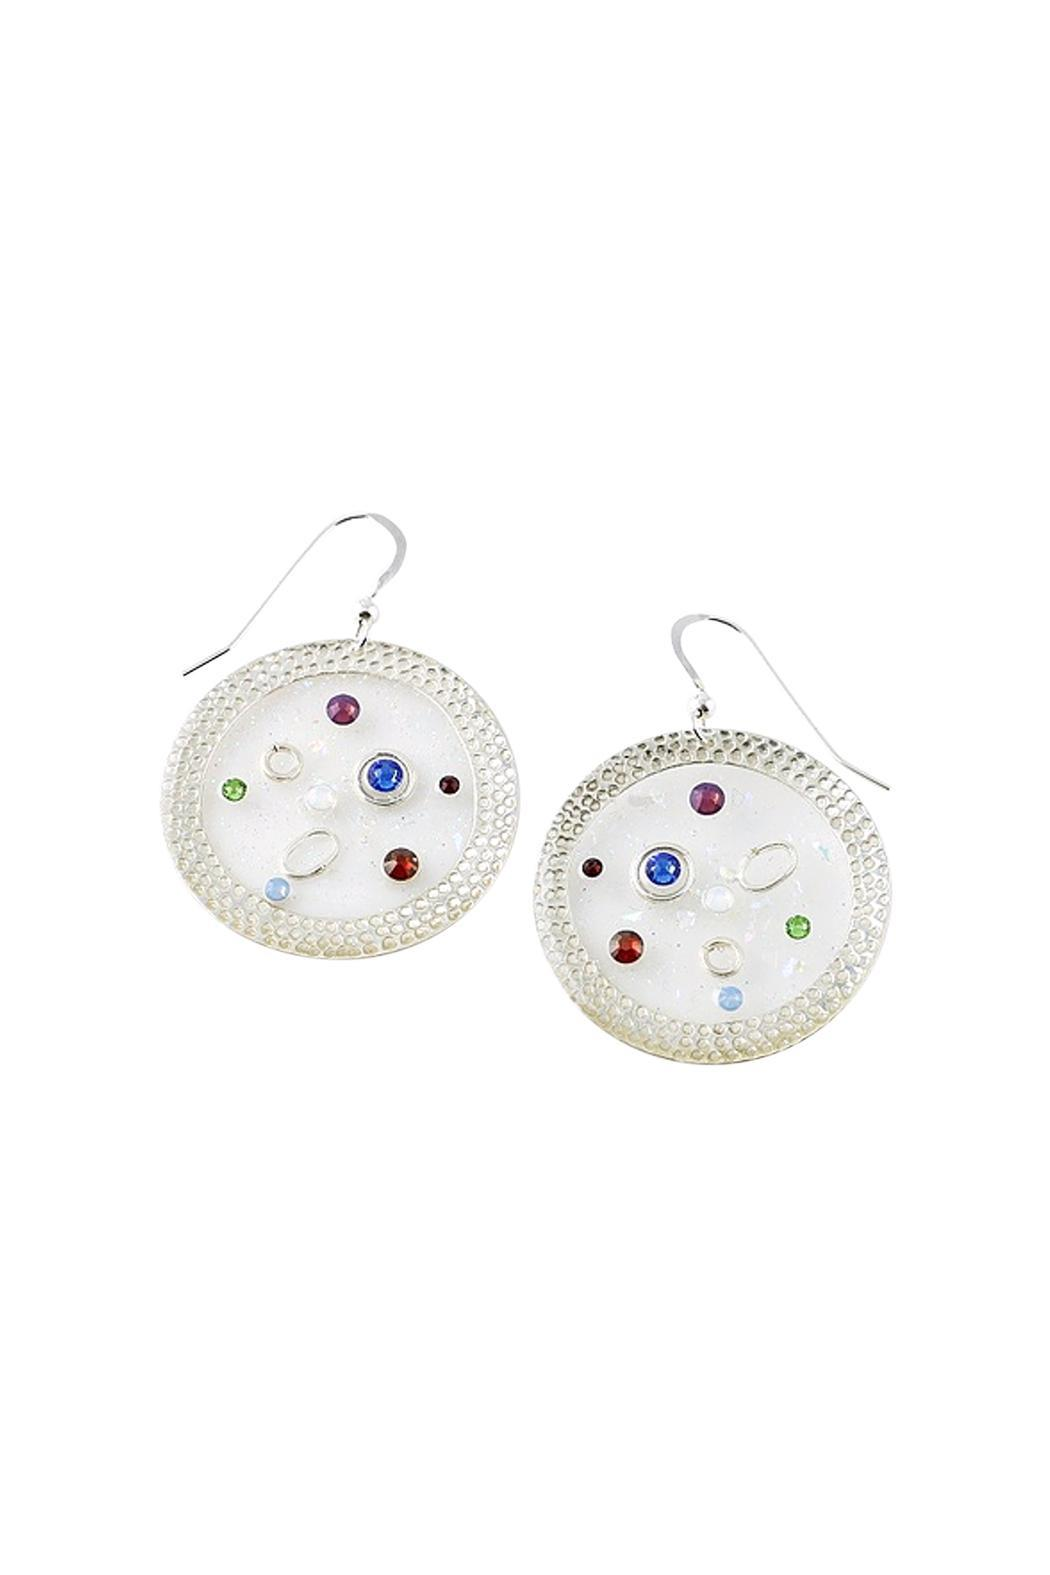 G Gallery & Glass Studio Sterling Crystal Earrings - Main Image